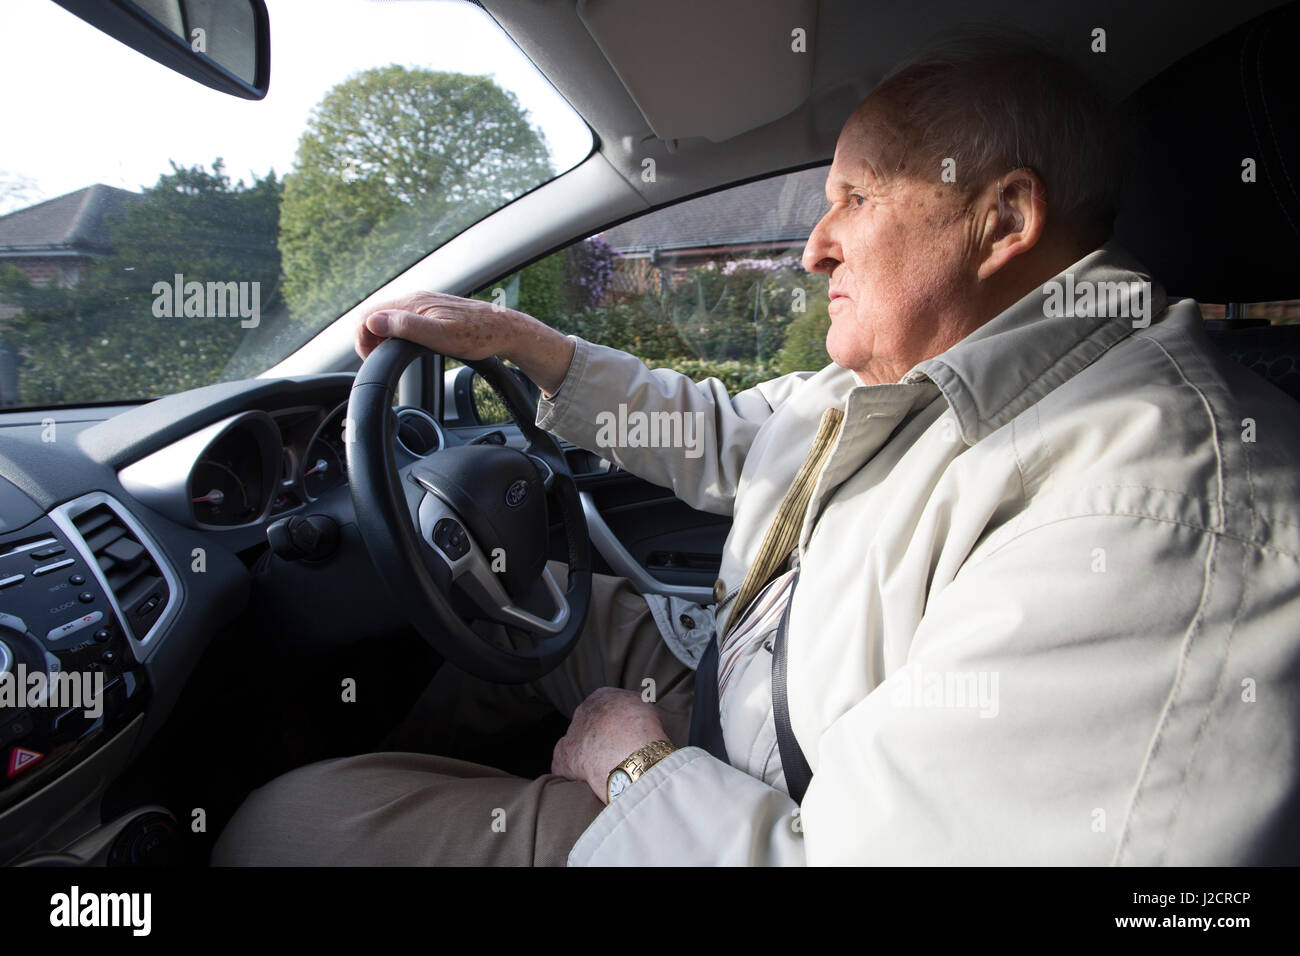 Elderly man in his eighties driving a car, England, UK - Stock Image